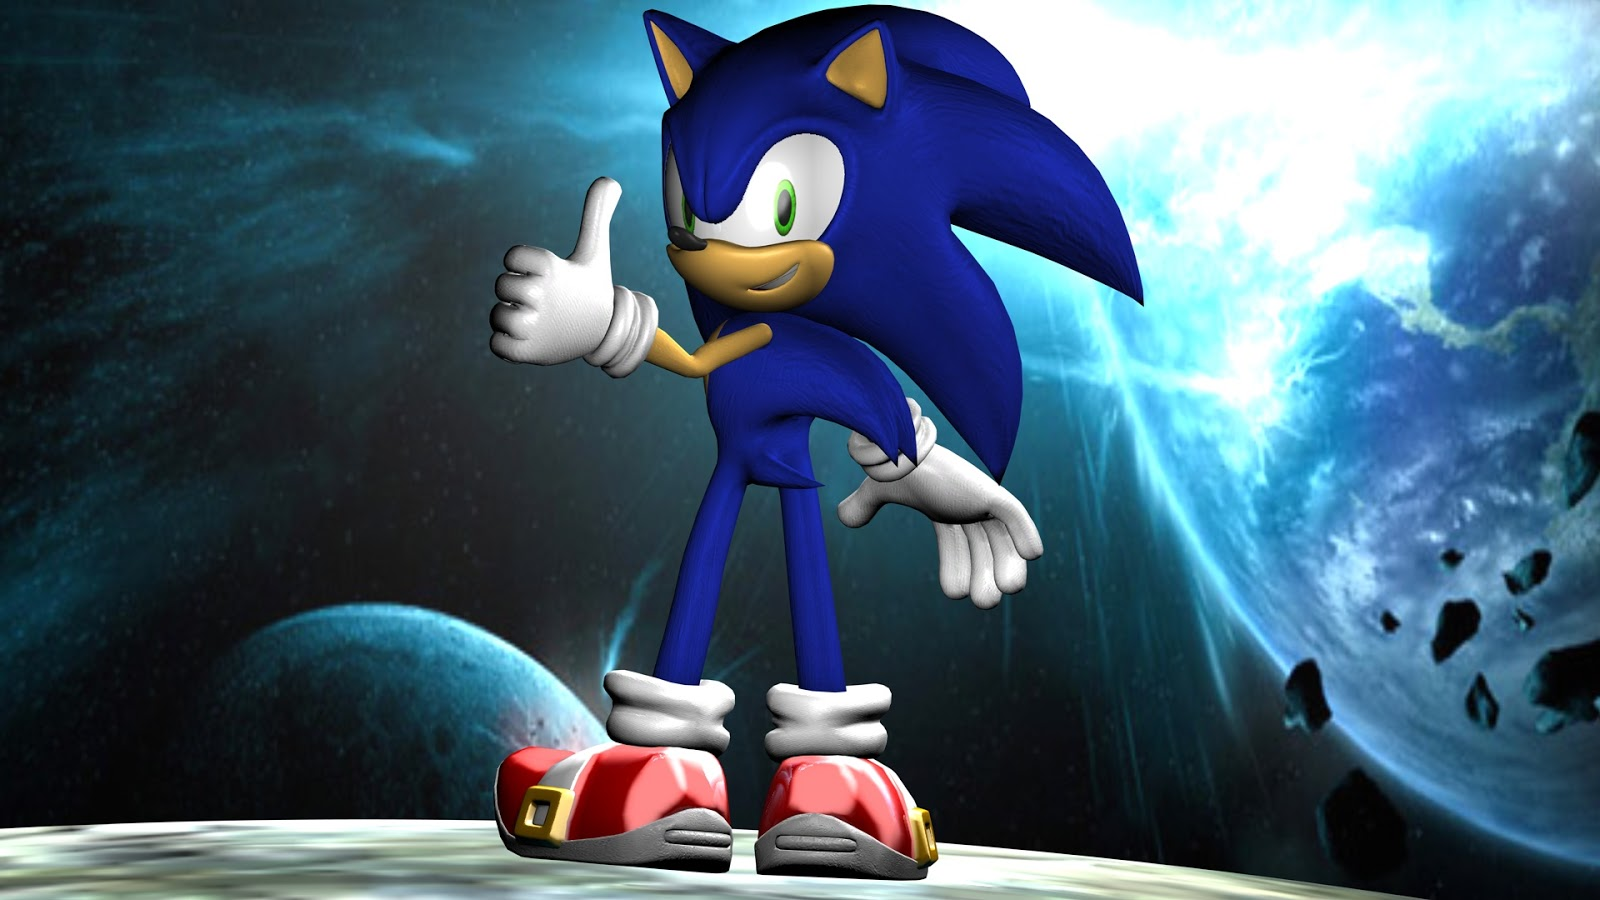 47 Sonic The Hedgehog Hd Wallpaper On Wallpapersafari